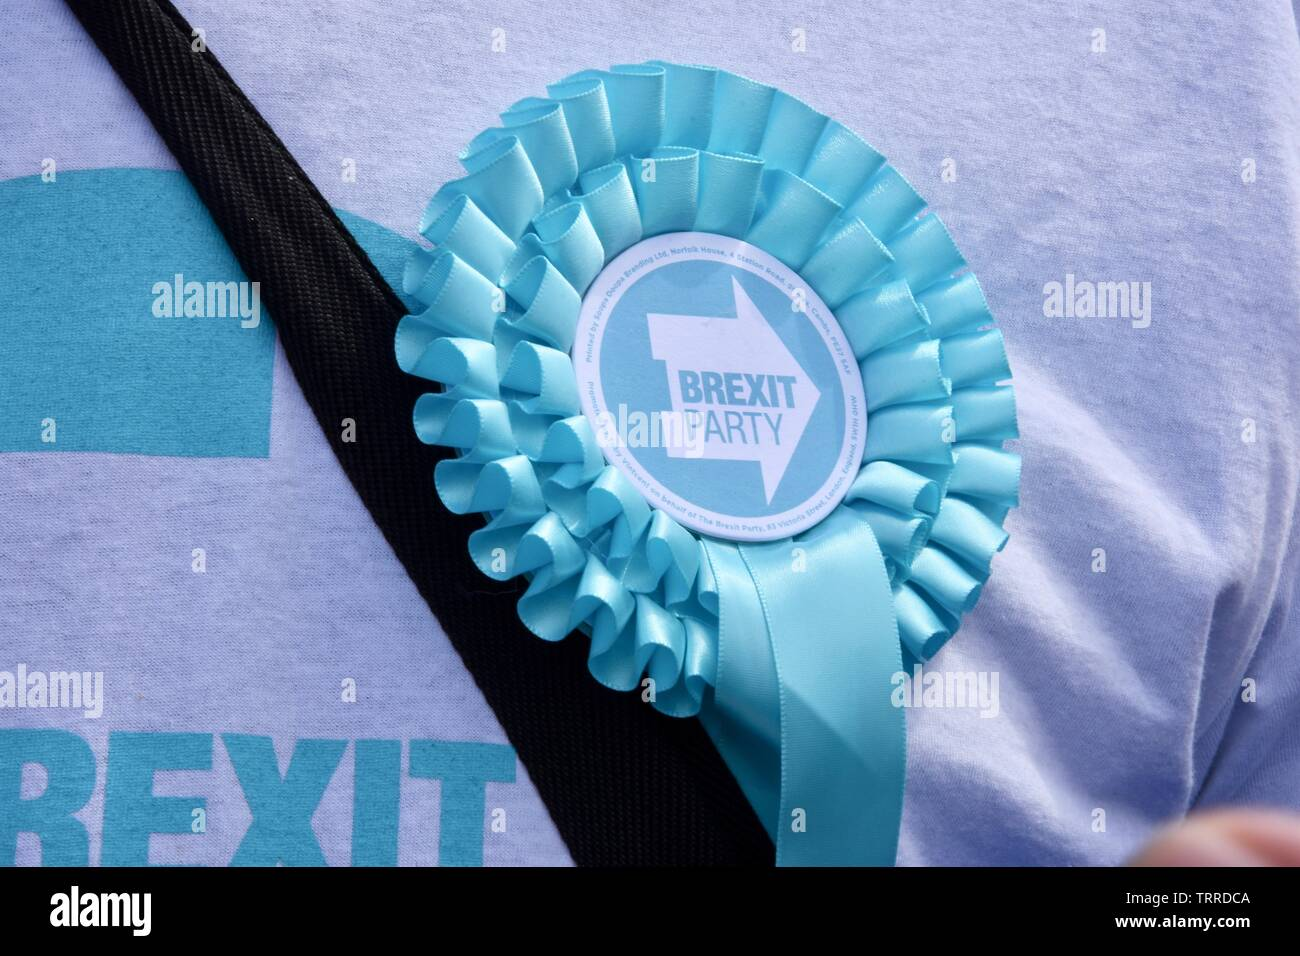 Brexit Party Rosette. Brexit Party, Westminster, London. Stock Photo